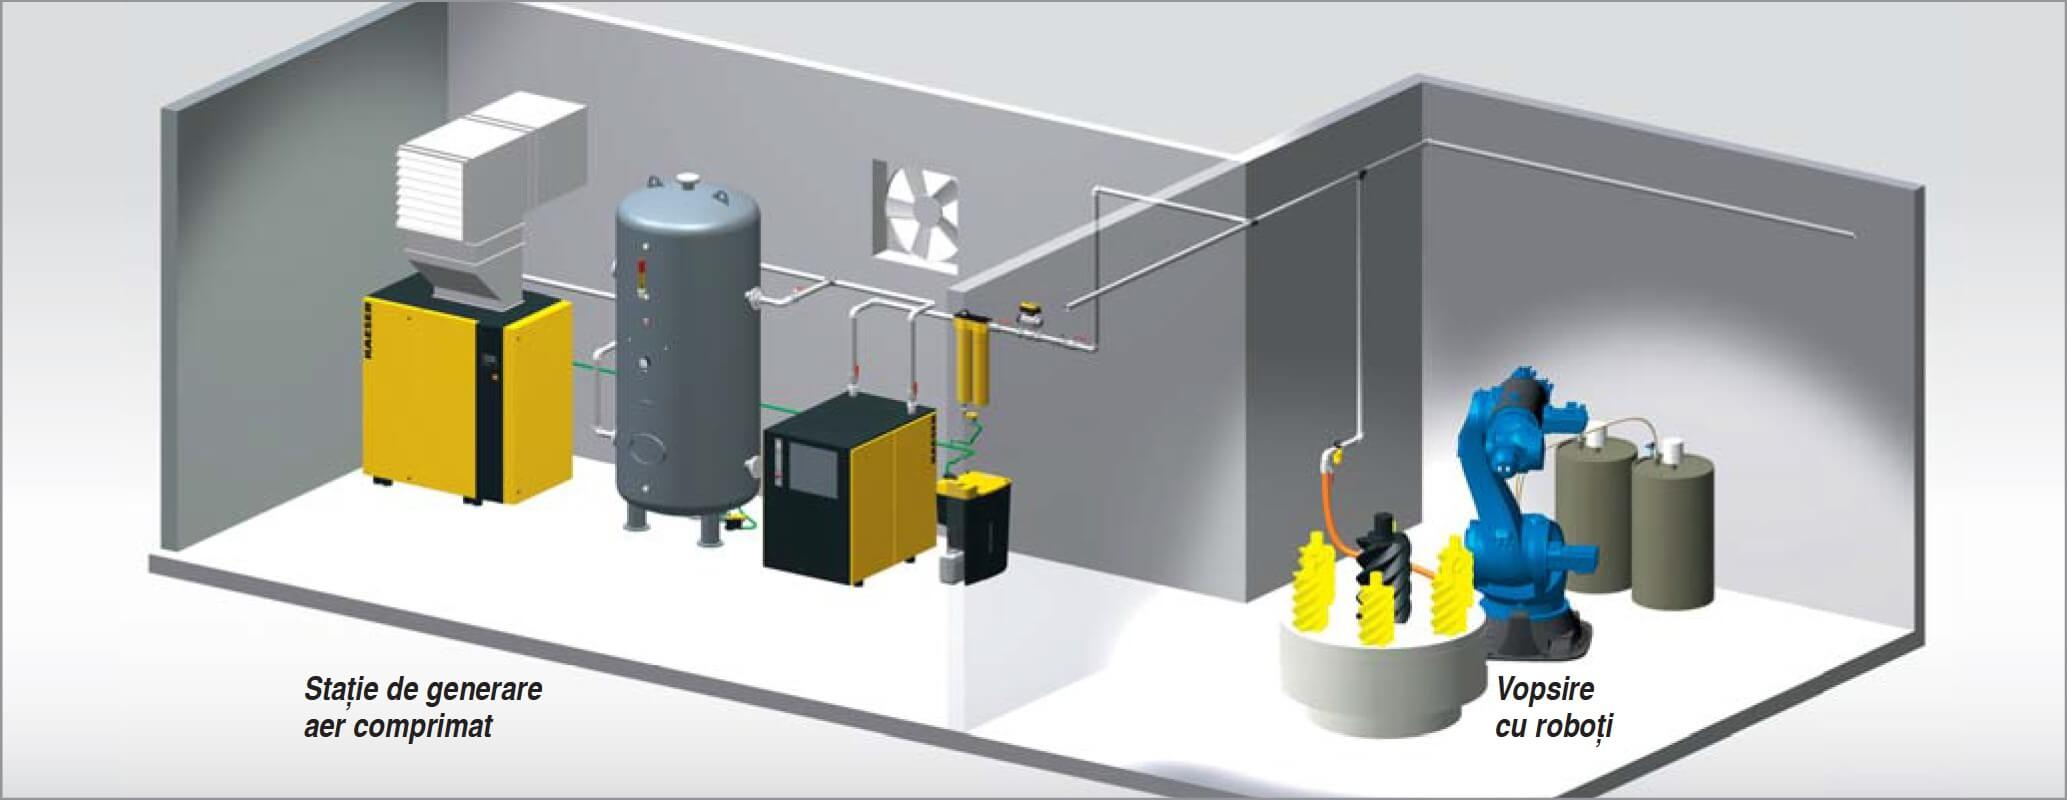 inspection of the compressed air system